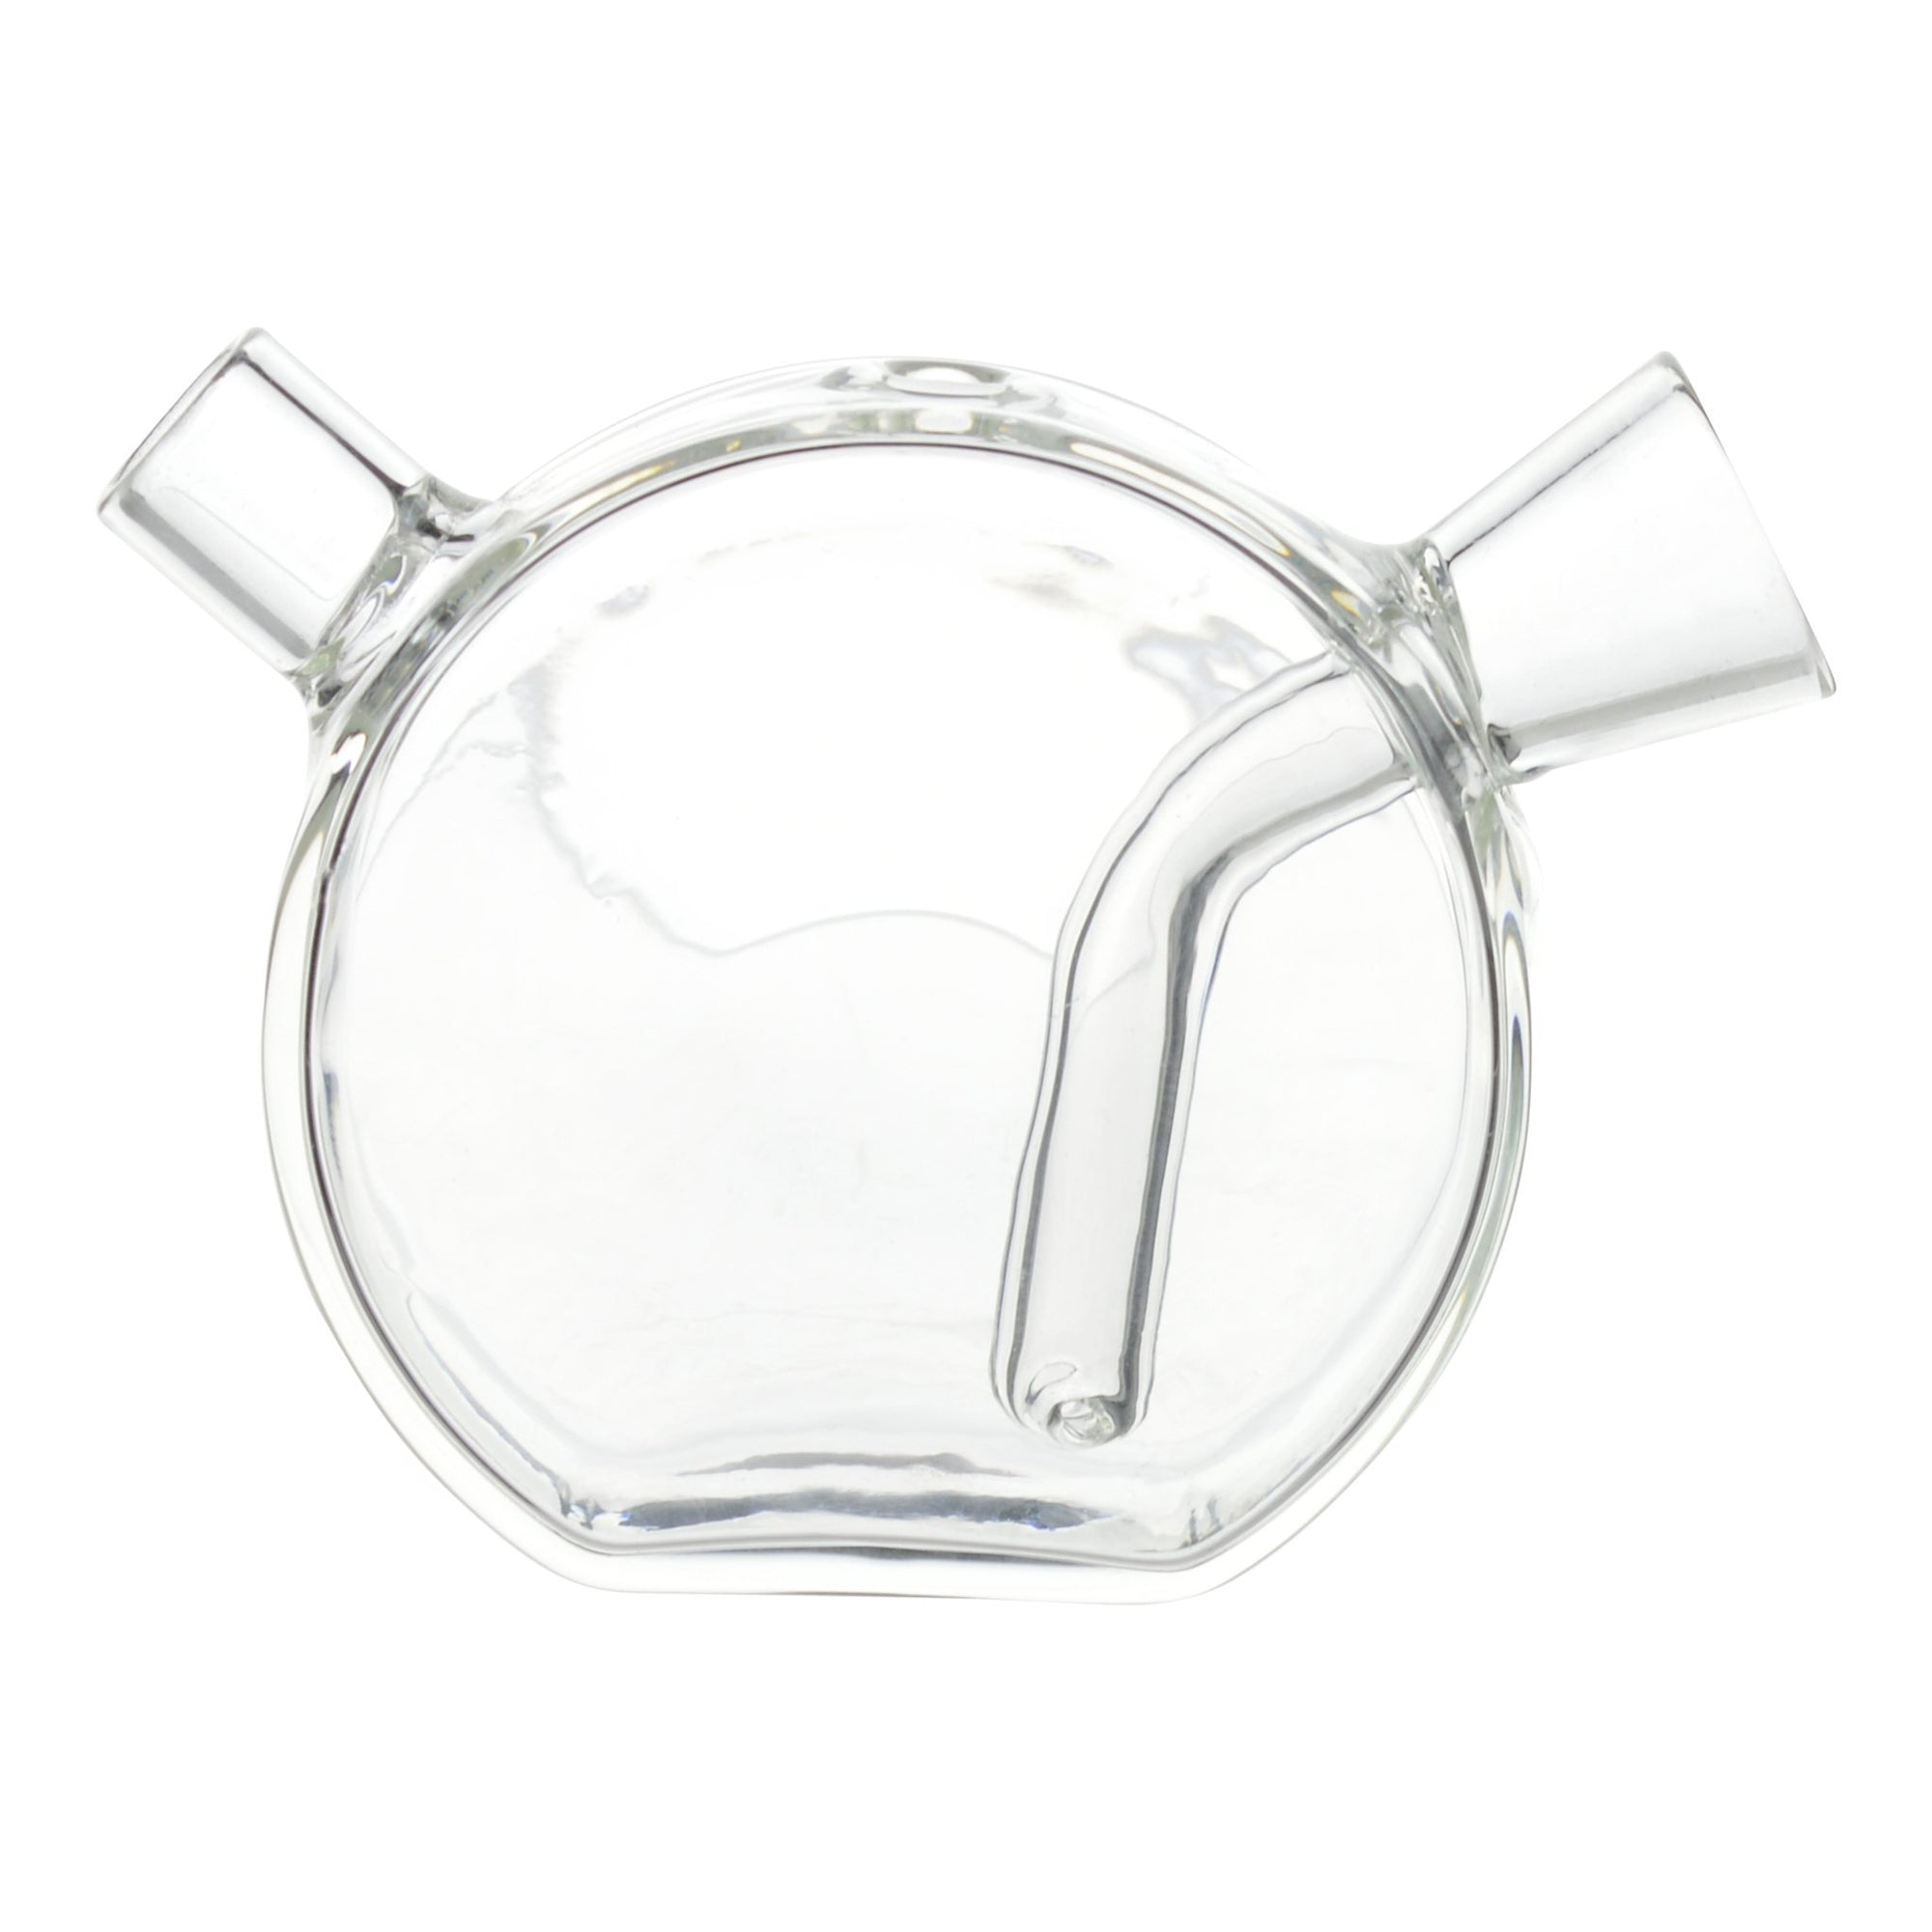 Clear portable 2.5-inch glass joint - bubbler accessory two ends unique round design sturdy base